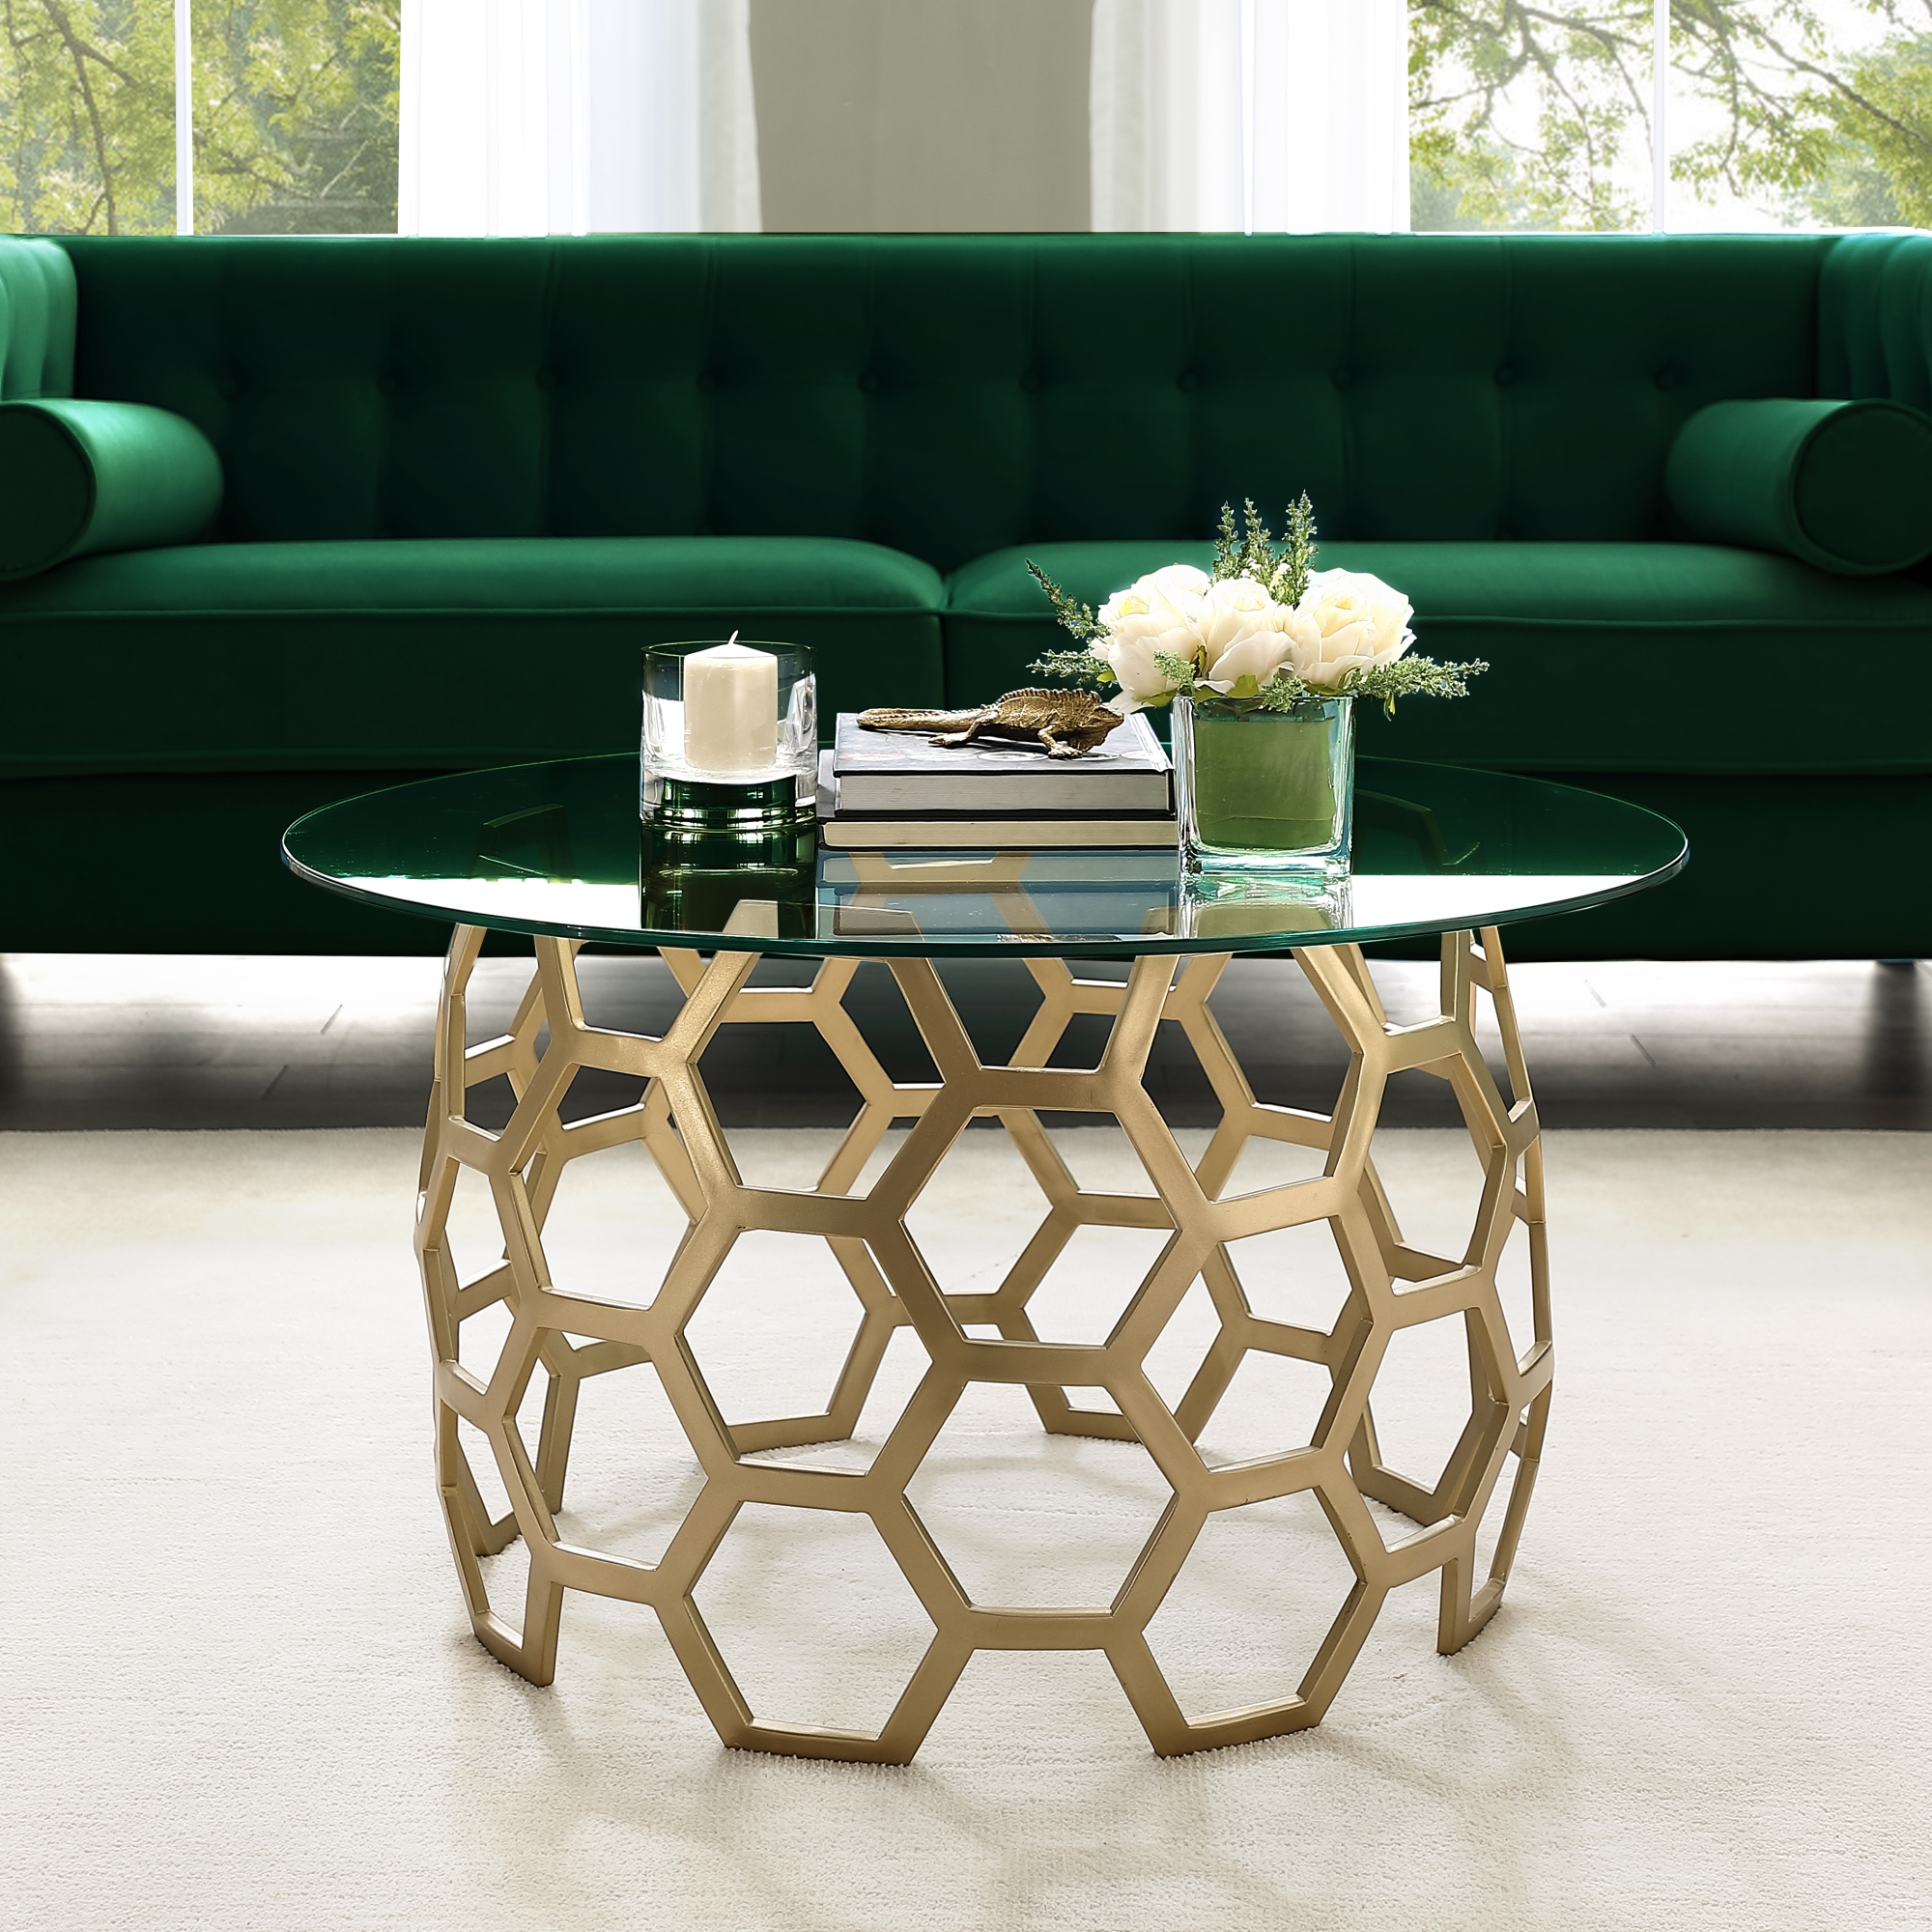 Picture of: Inspired Home Janina Round Coffee Table Clear Glass Top Geometric Hexagon Metal Frame Modern Gold Walmart Com Walmart Com